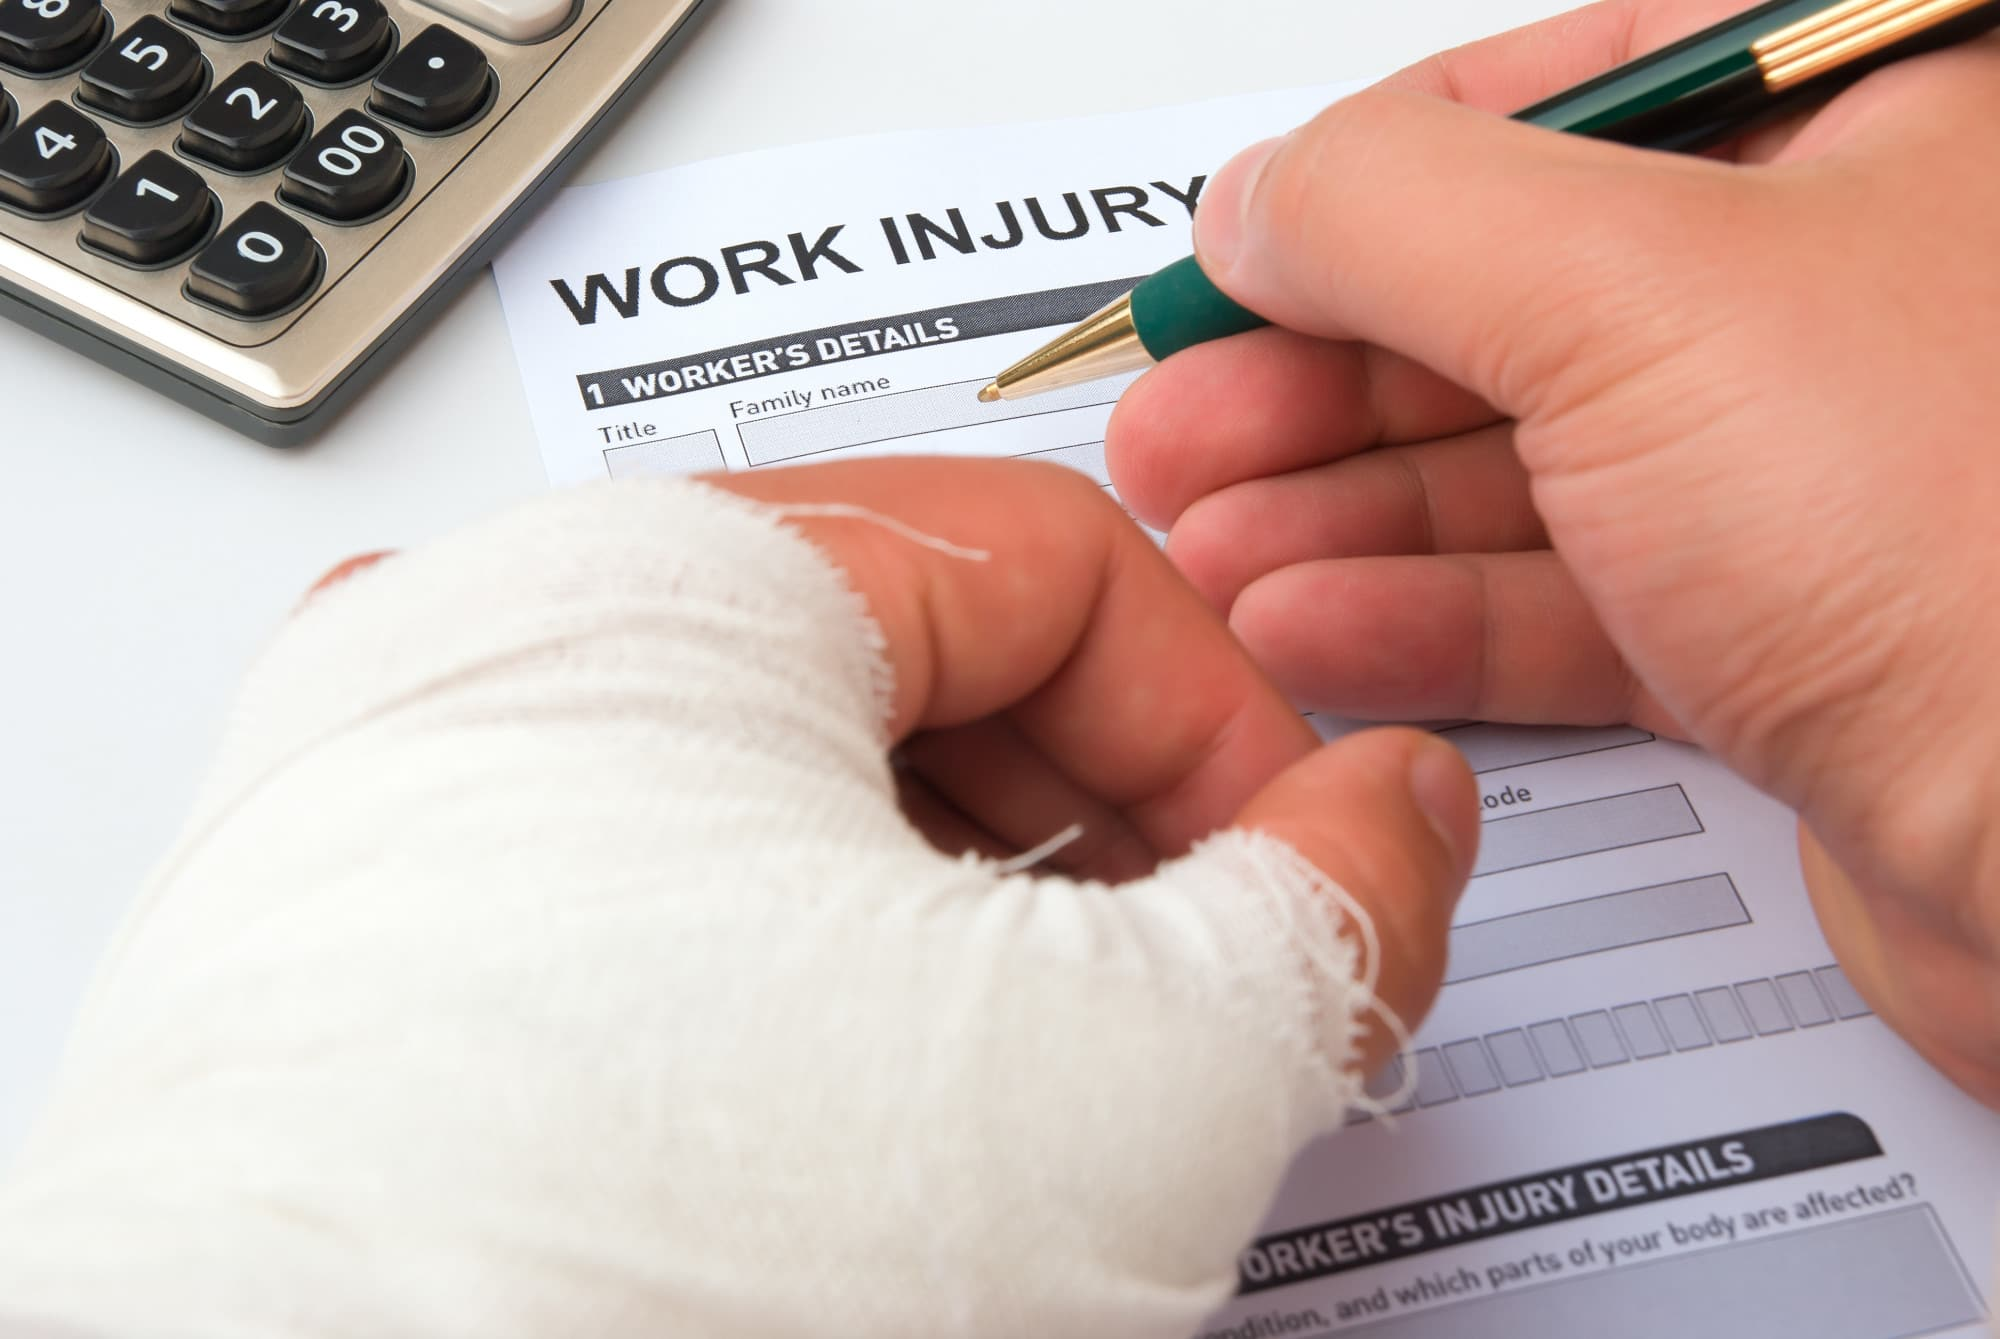 Can I Sue My Employer If I Suffer a Work Injury?